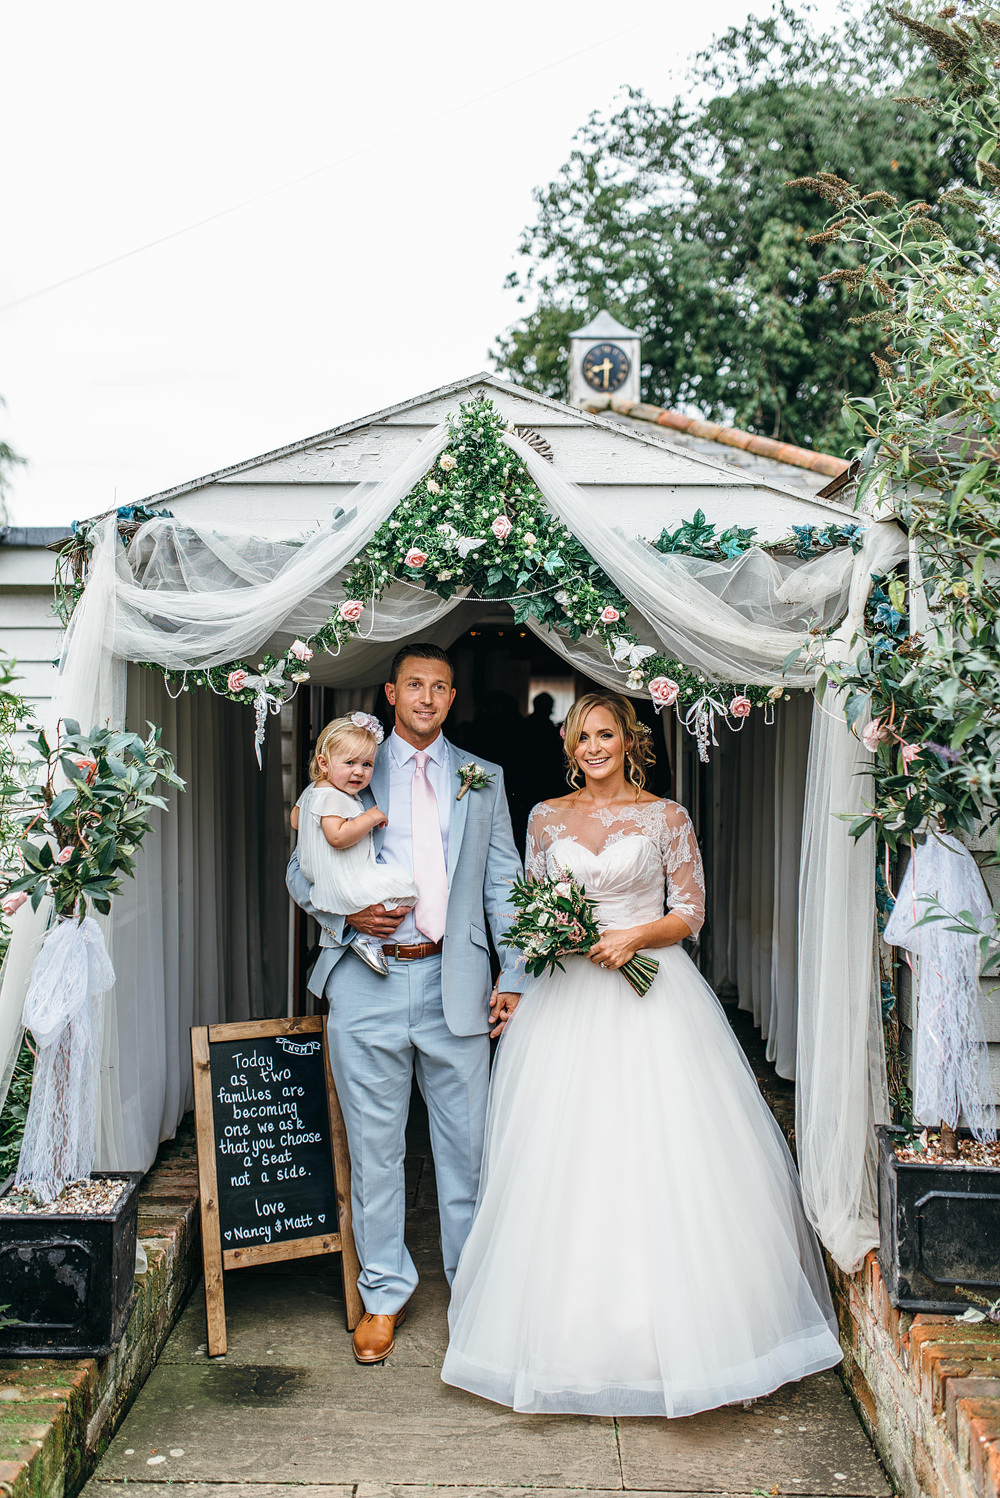 Bride and groom with child standing under canopy